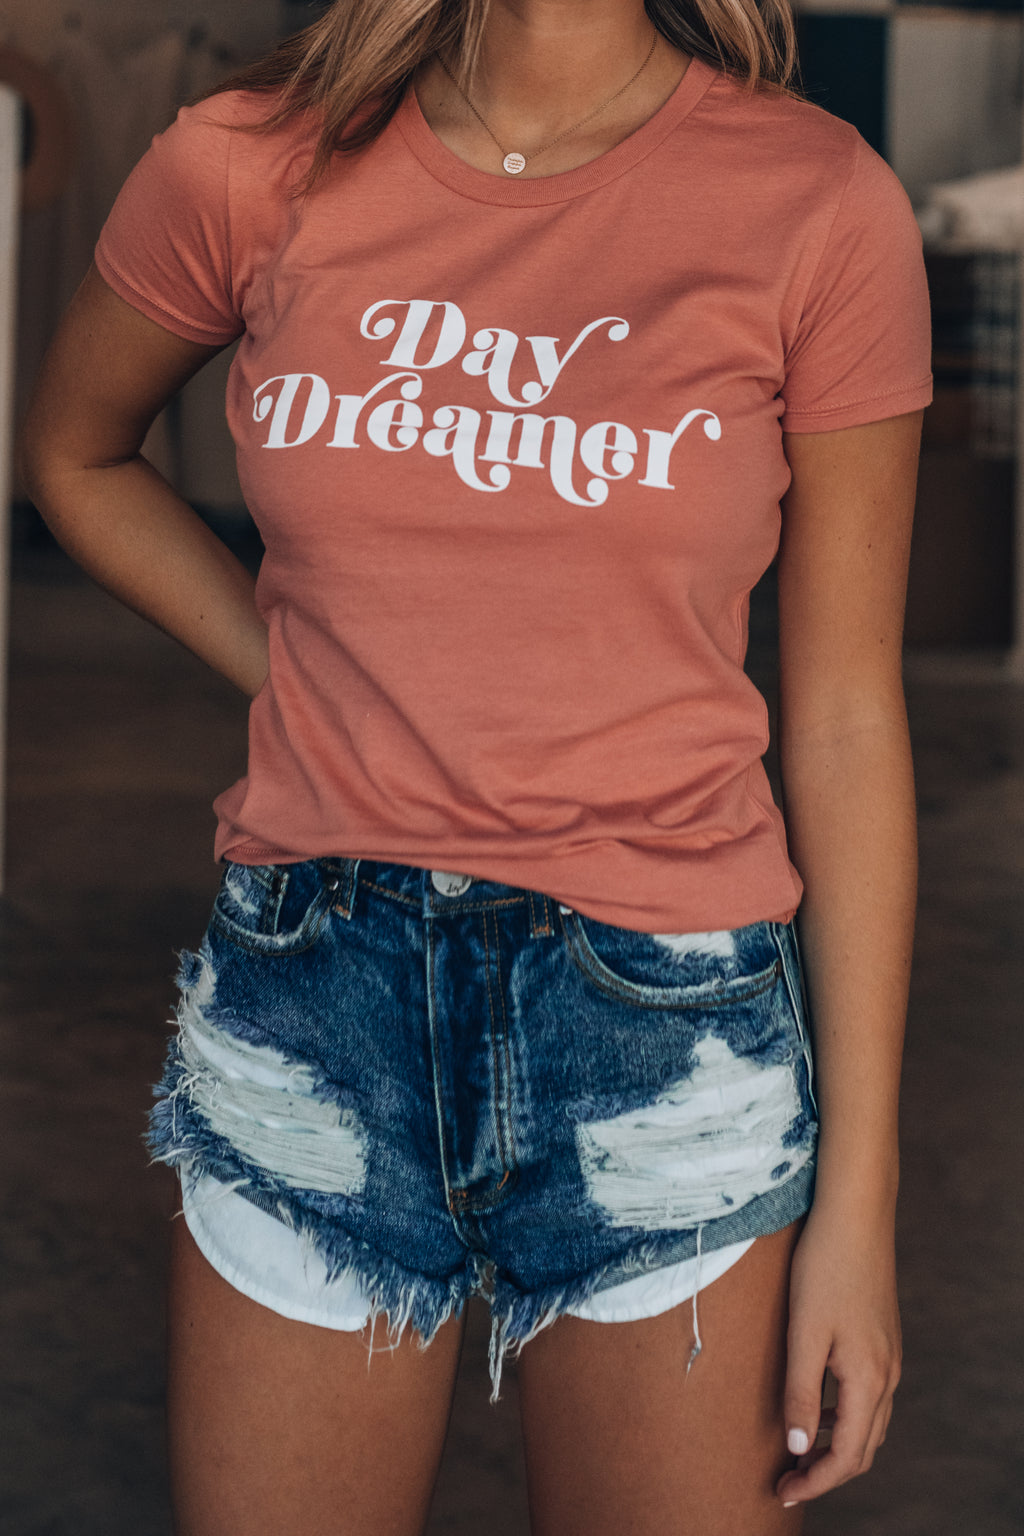 Day Dreamer Tee - FINAL SALE